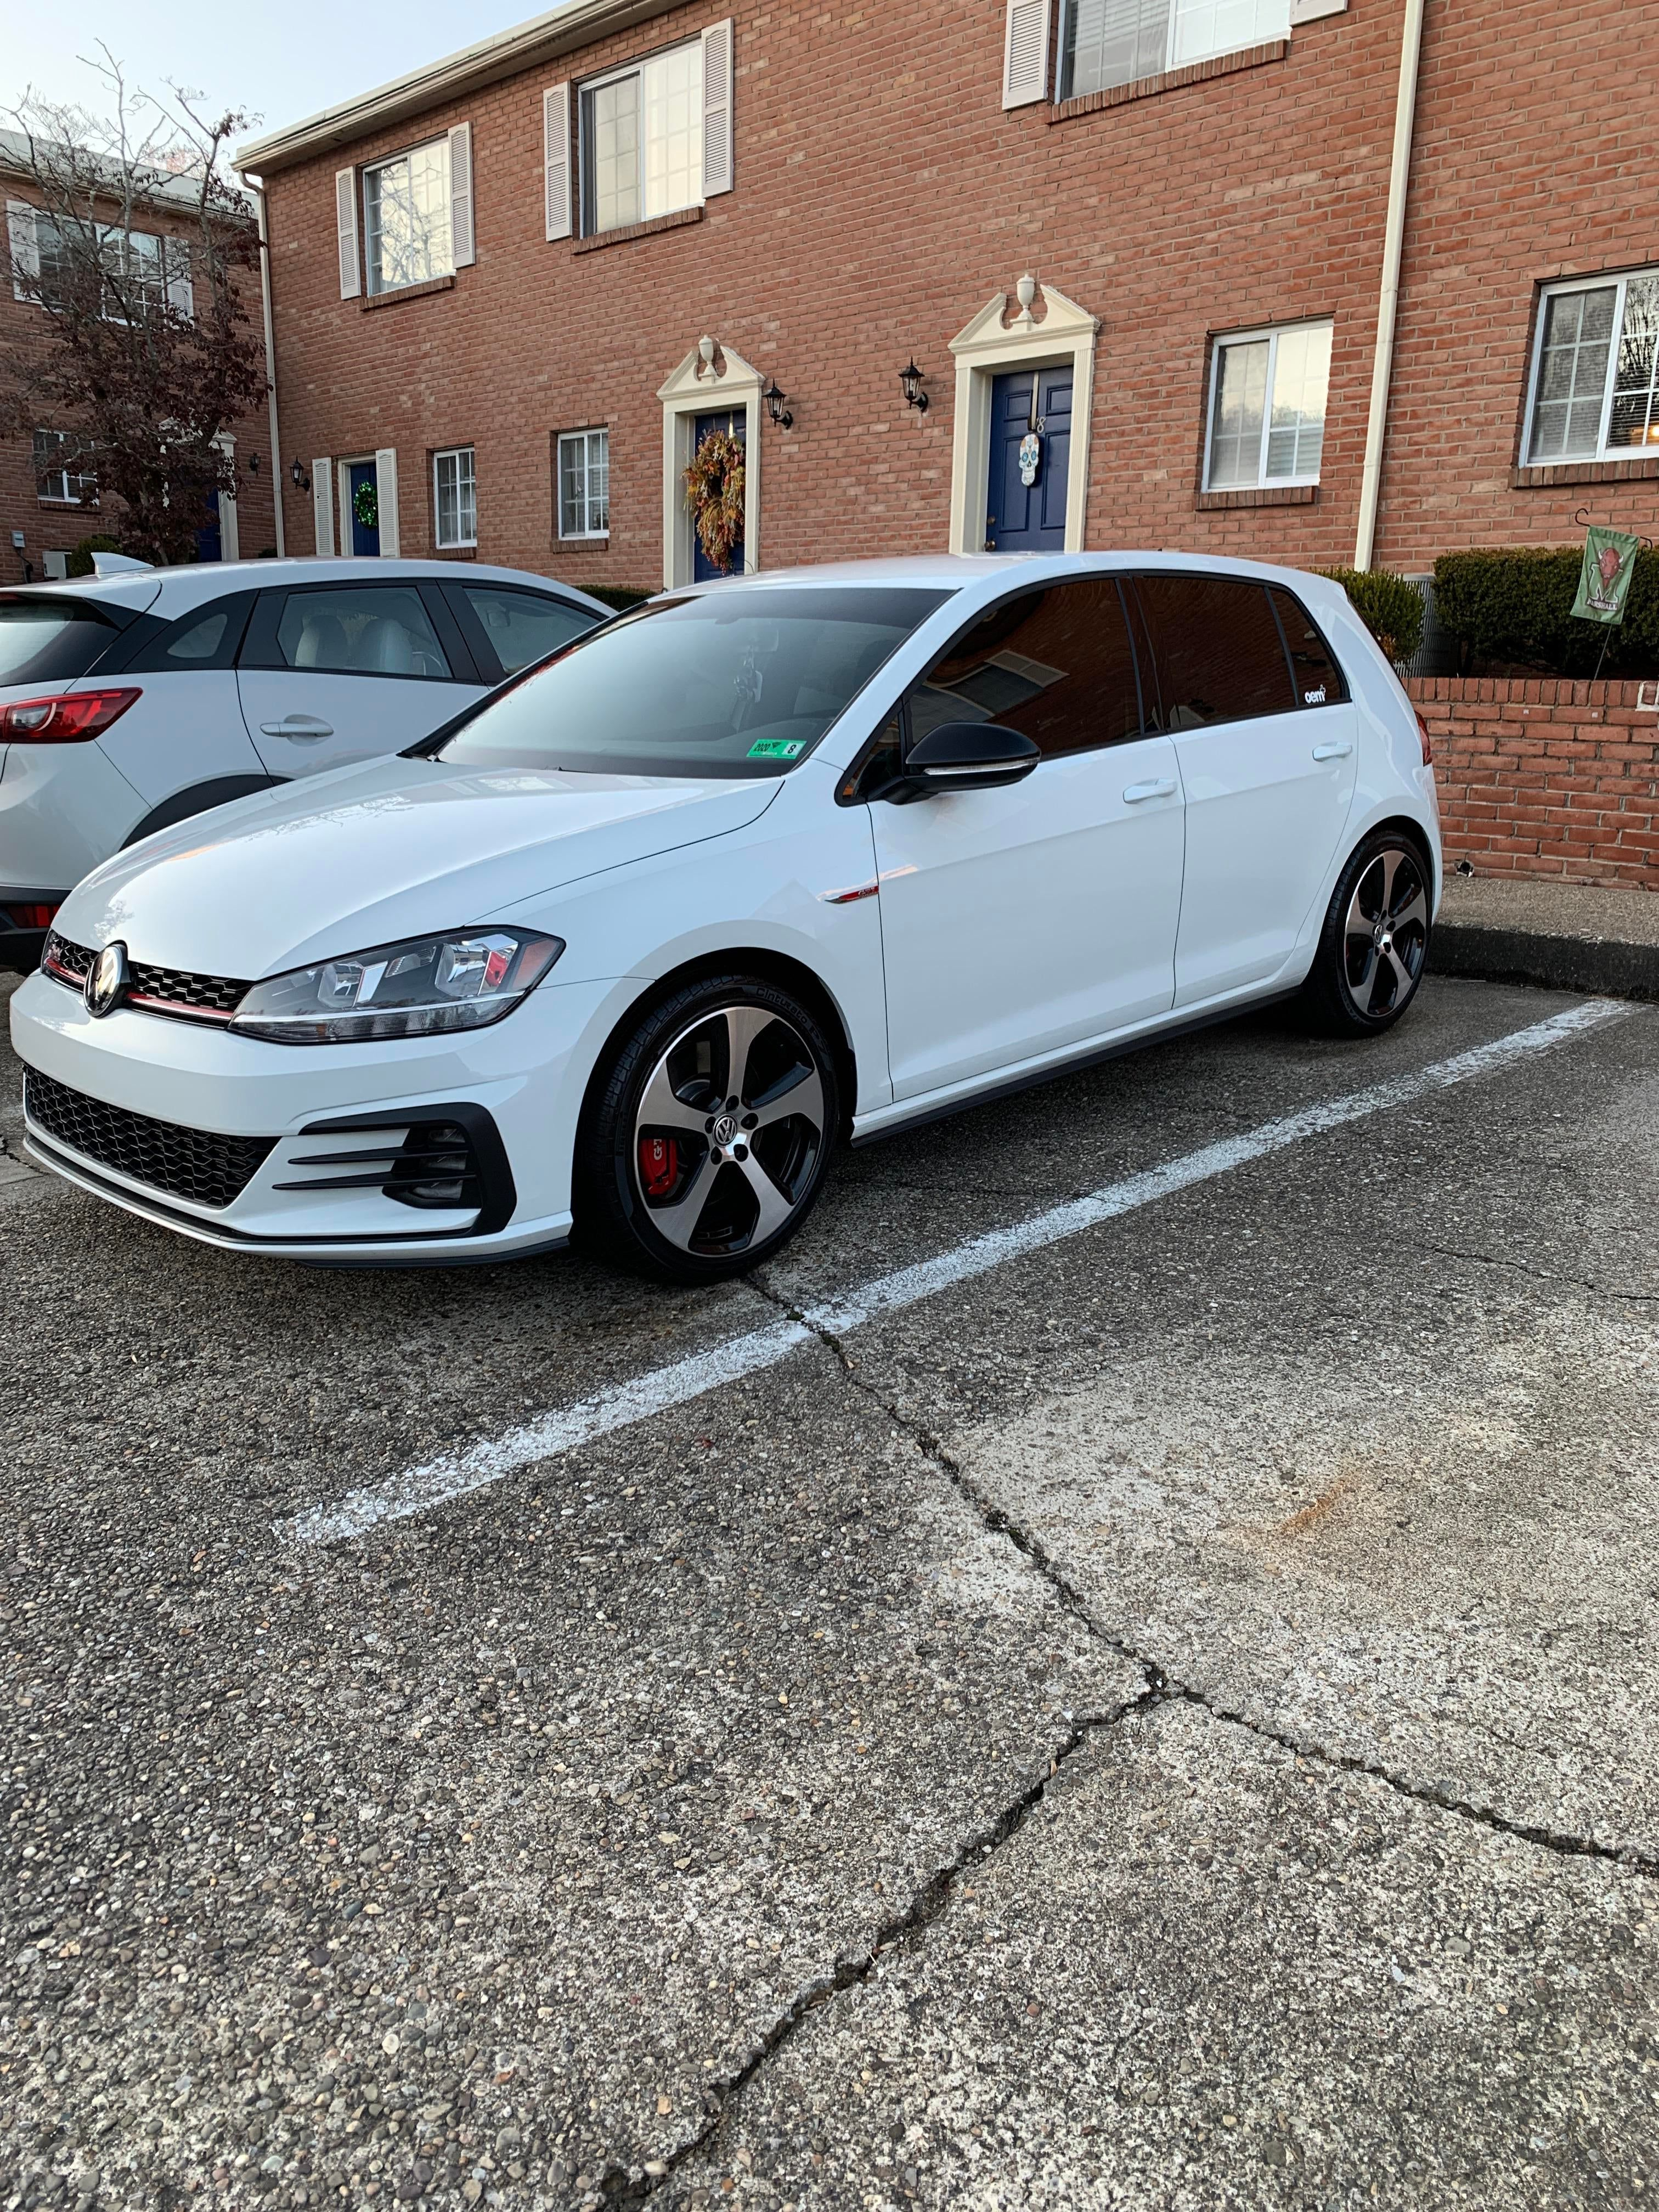 First Vw Since My Mk3 Jetta Brand New Pure White Mk7 5 Gti Evmore Electric Vehichle Pure Products Gti Pure White